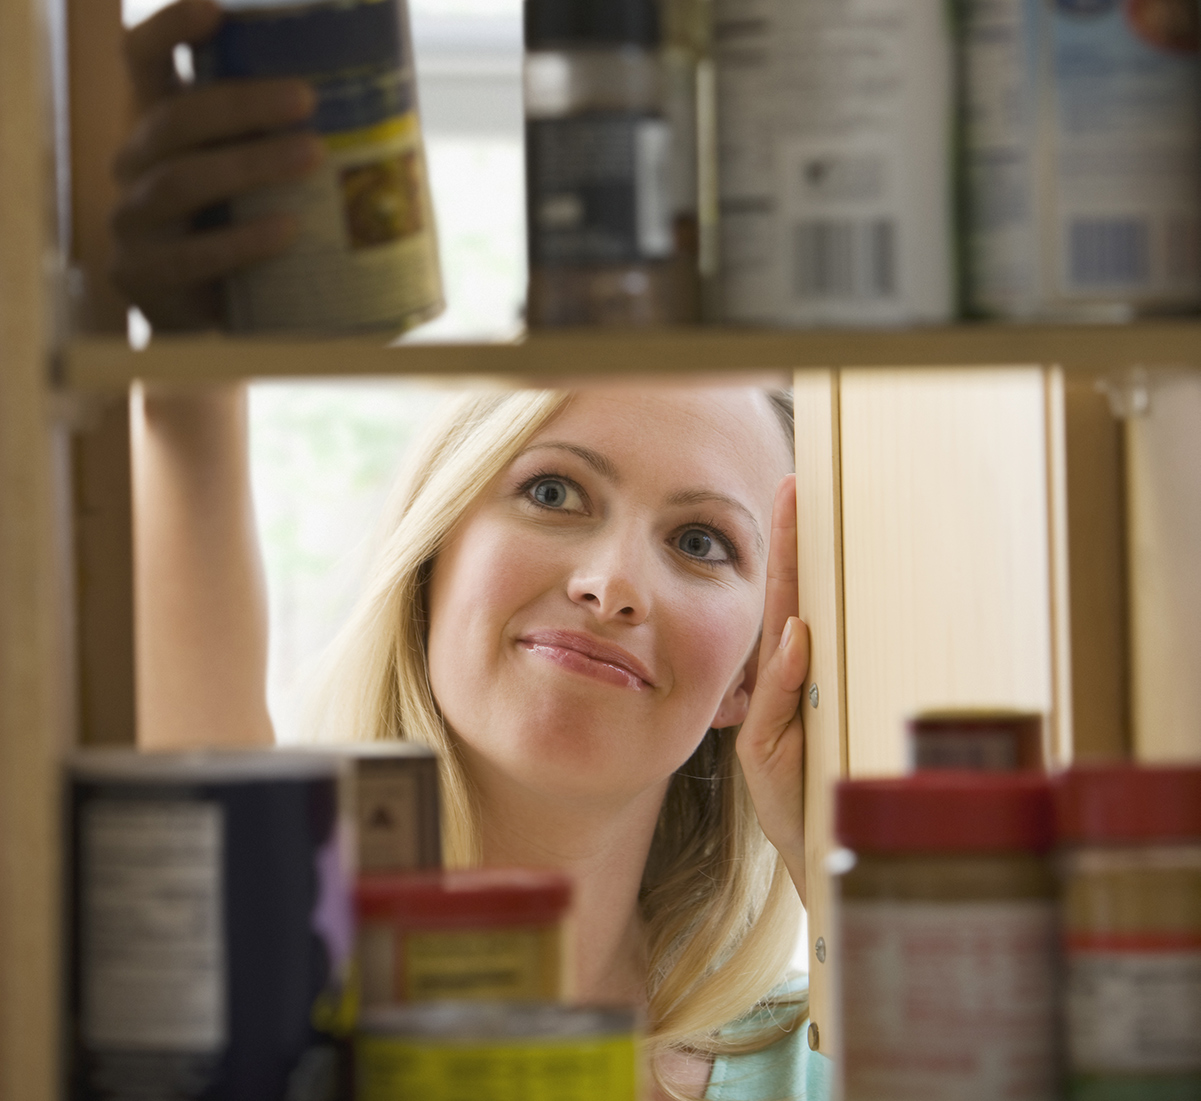 Women looks into kitchen cabinet and grabs a can of vegetables.